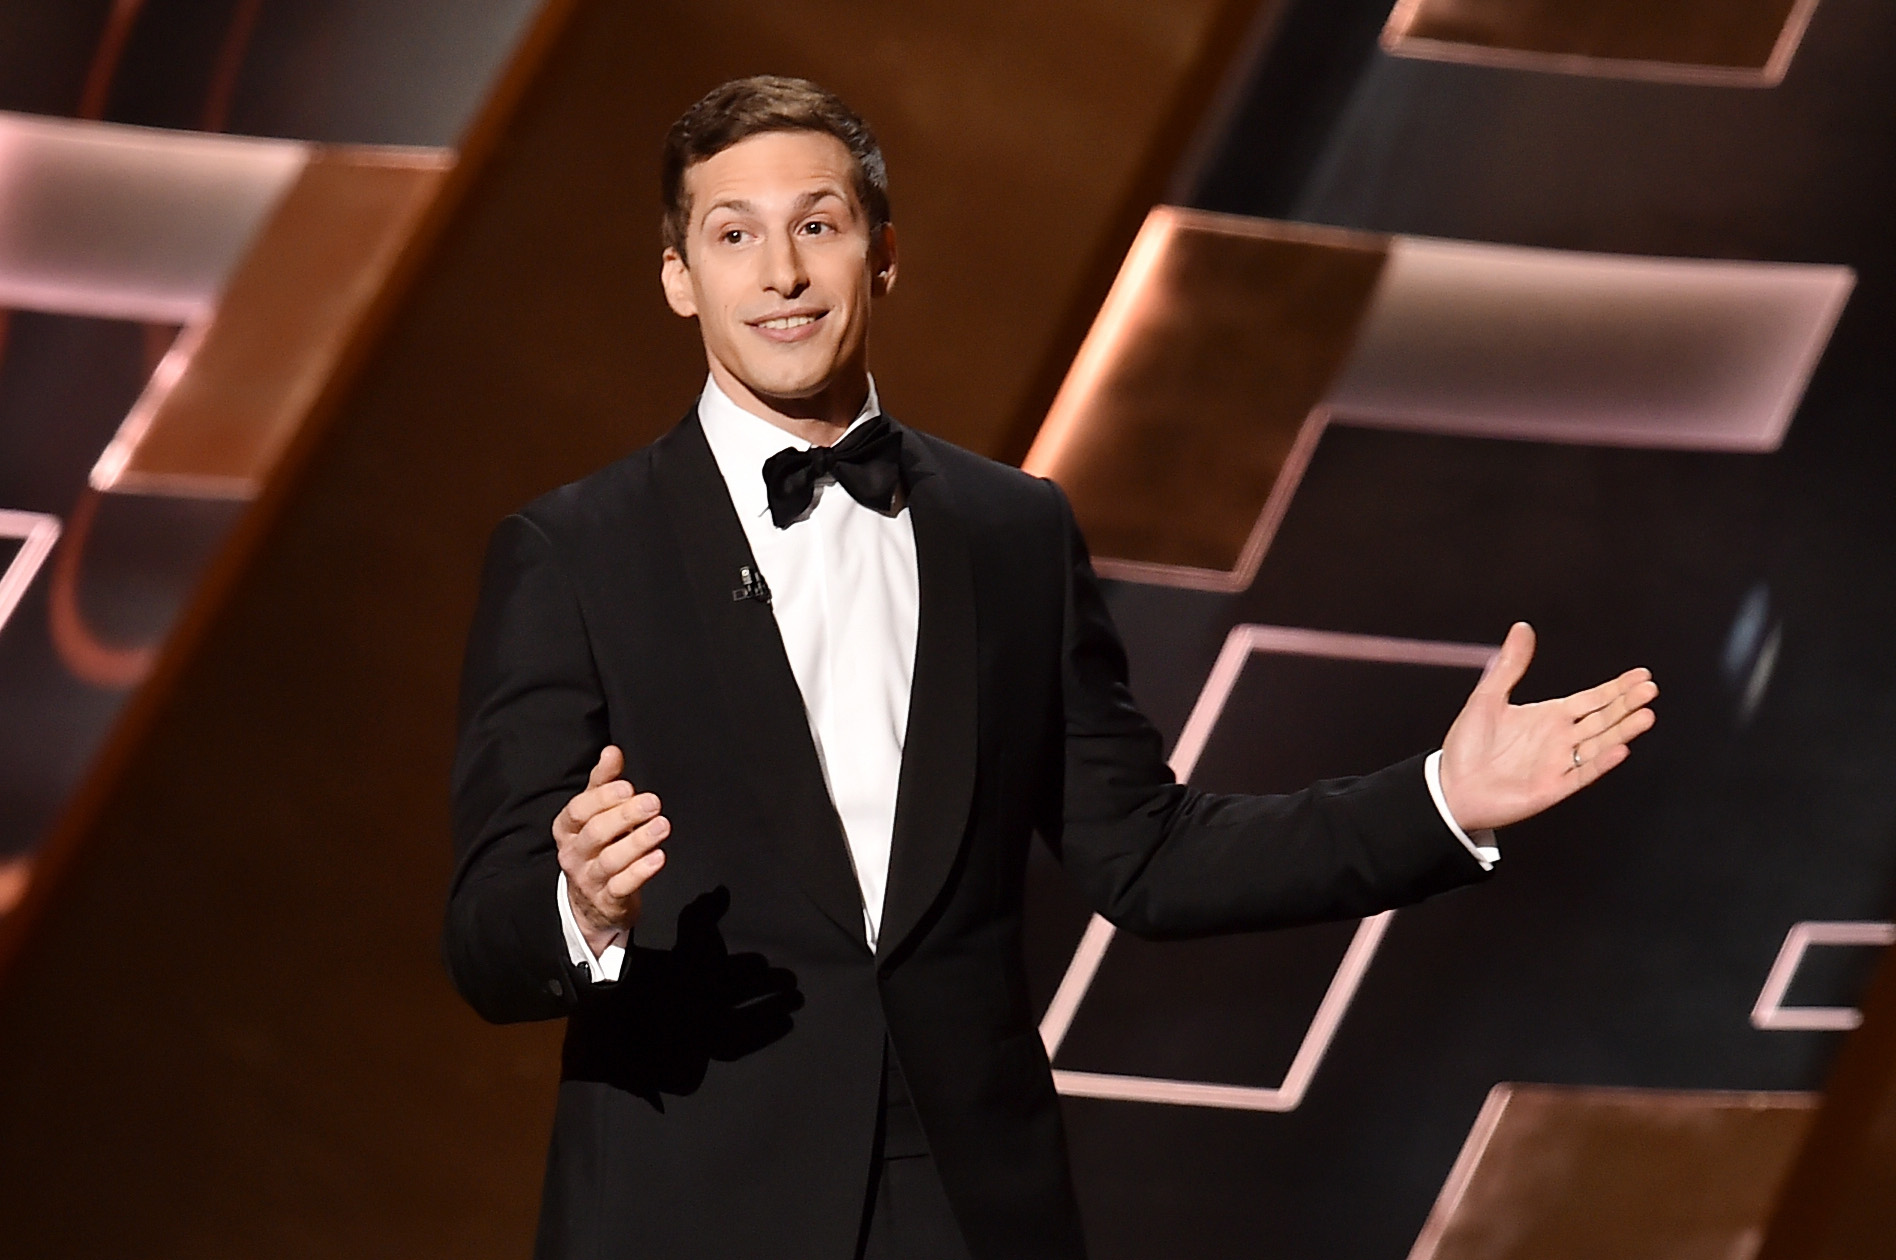 Andy Samberg onstage during the 67th Annual Primetime Emmy Awards at Microsoft Theater on Sept. 20, 2015 in Los Angeles.